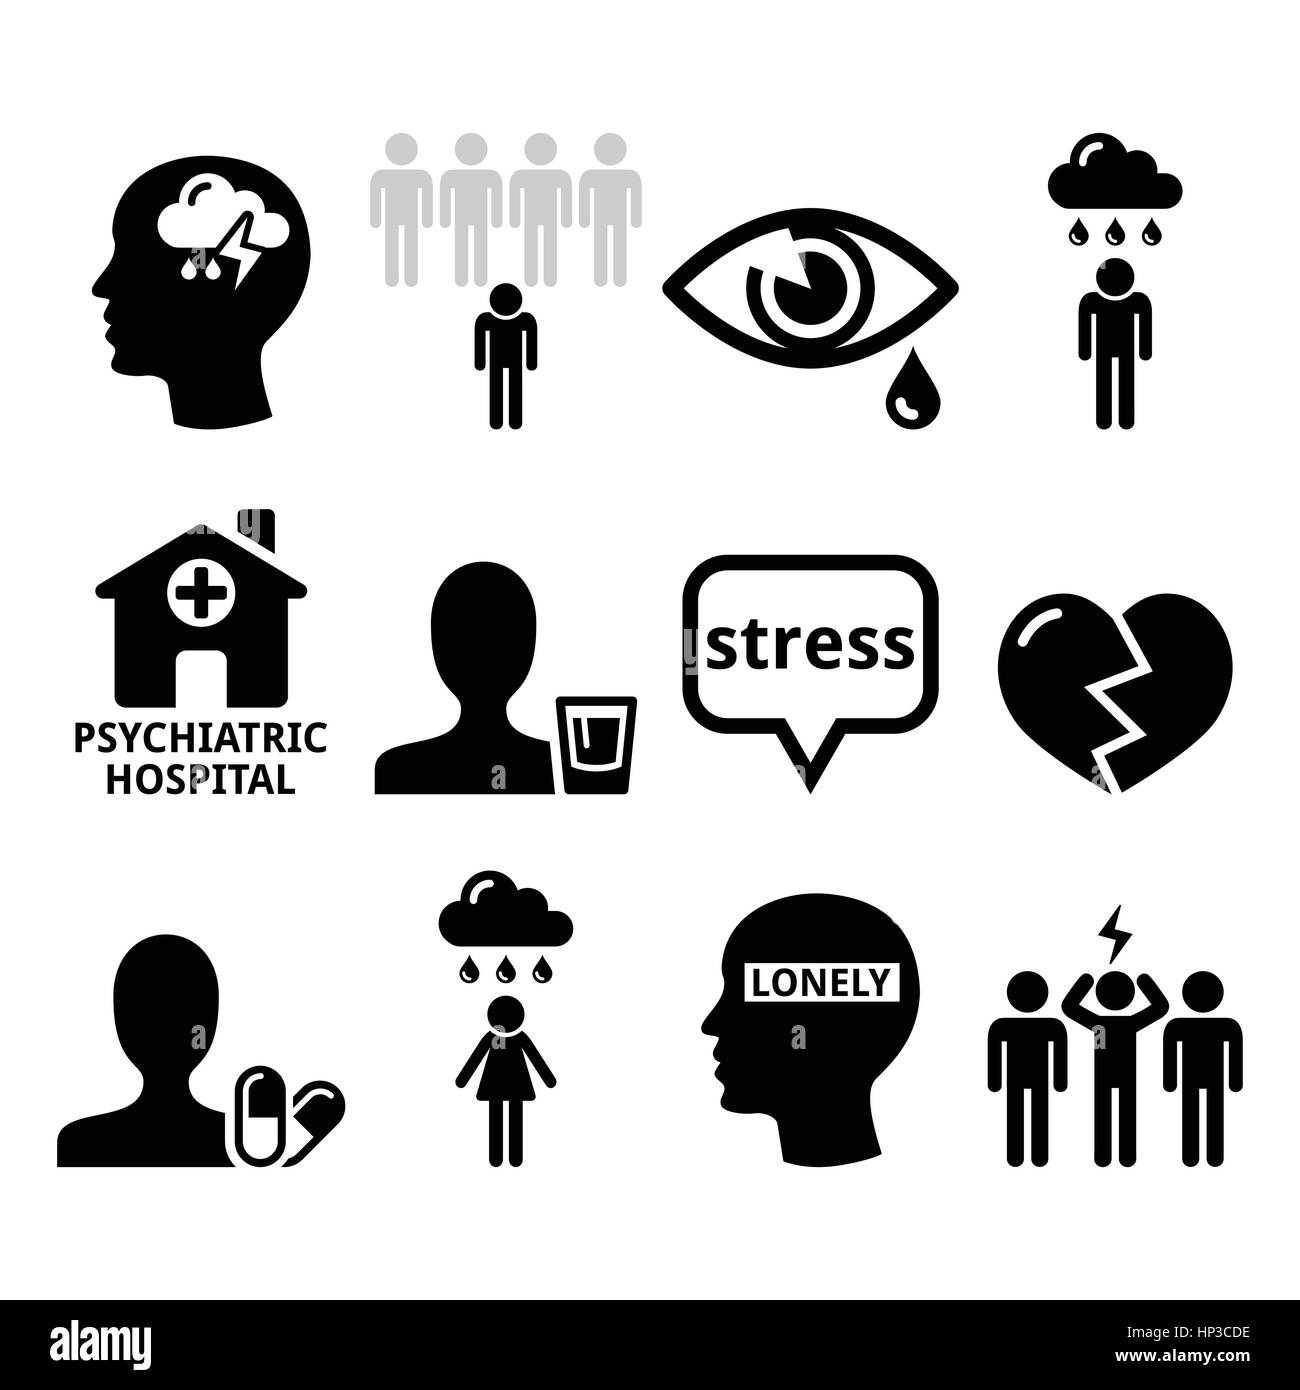 Mental health icons - depression, addiction, loneliness concept. Vector icons set - mental health isolated on white - Stock Vector